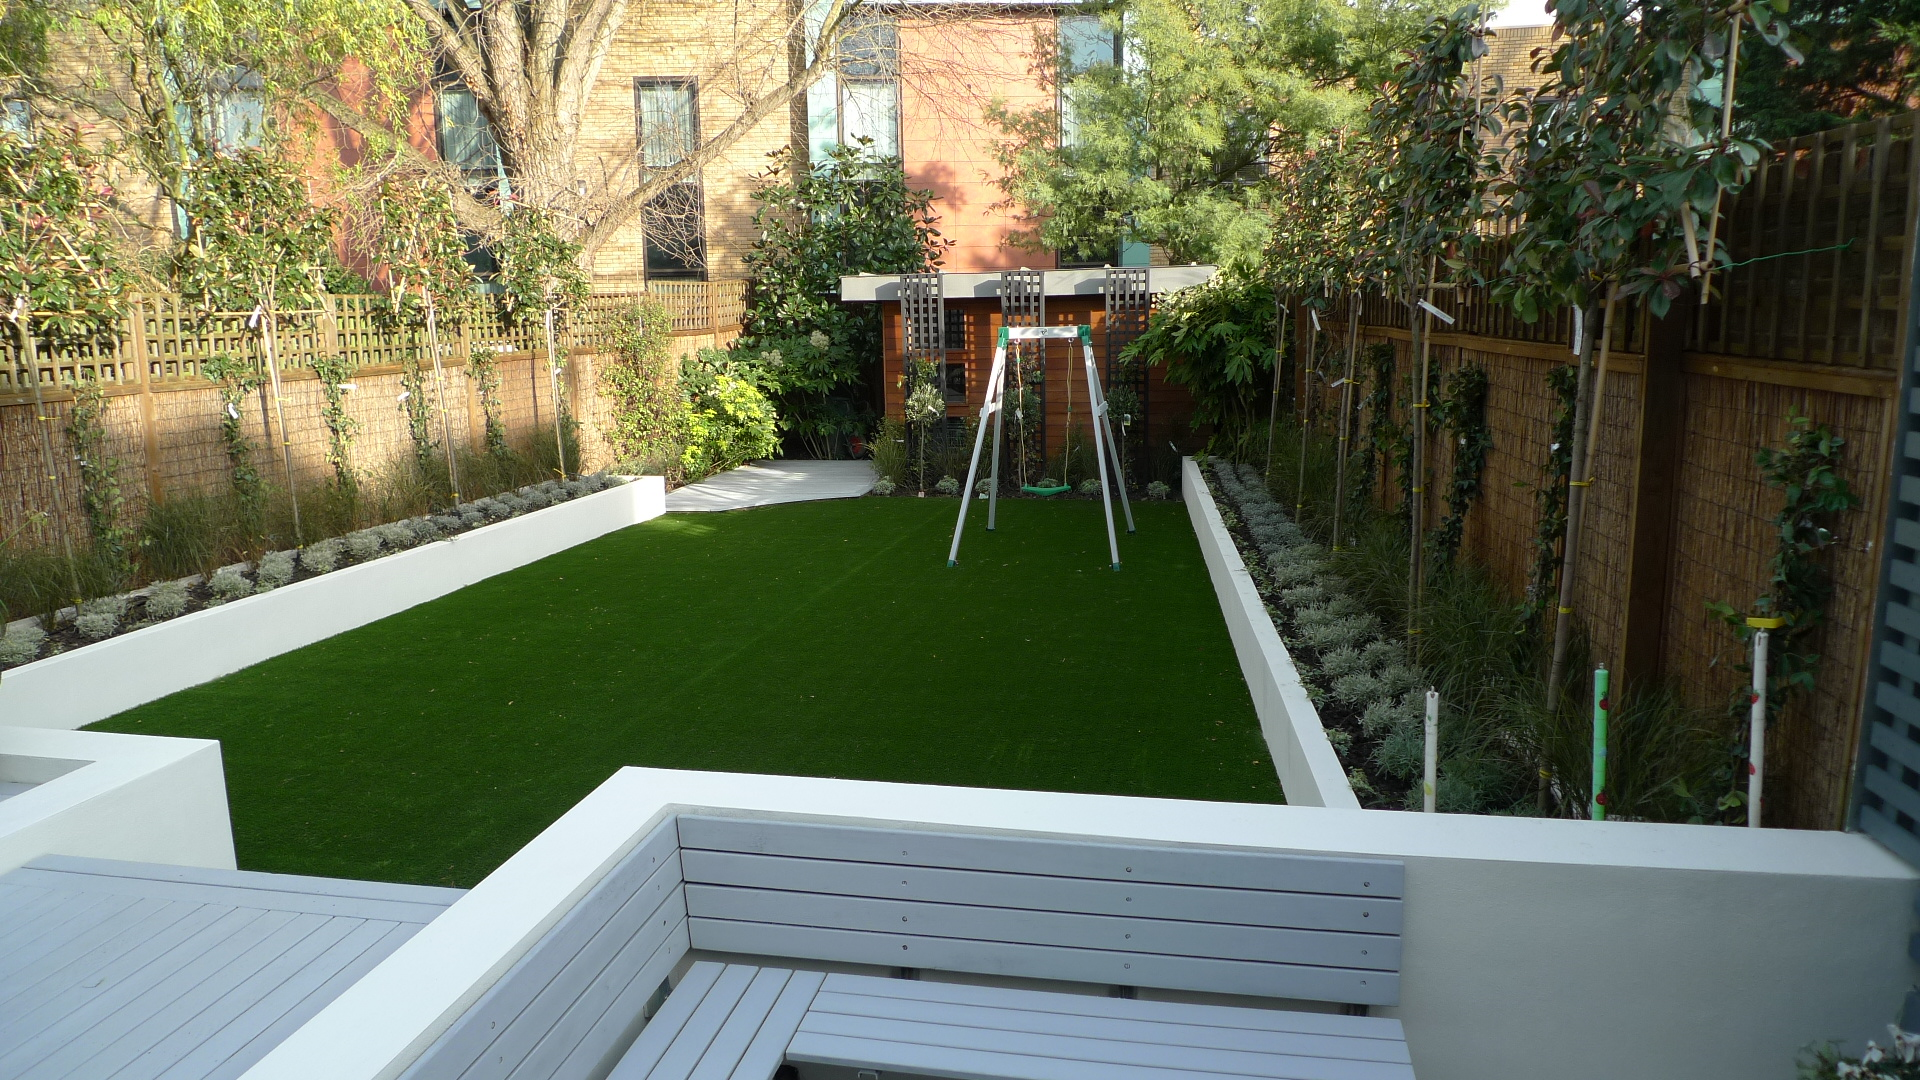 Modern garden design ideas london london garden design for Small garden ideas uk